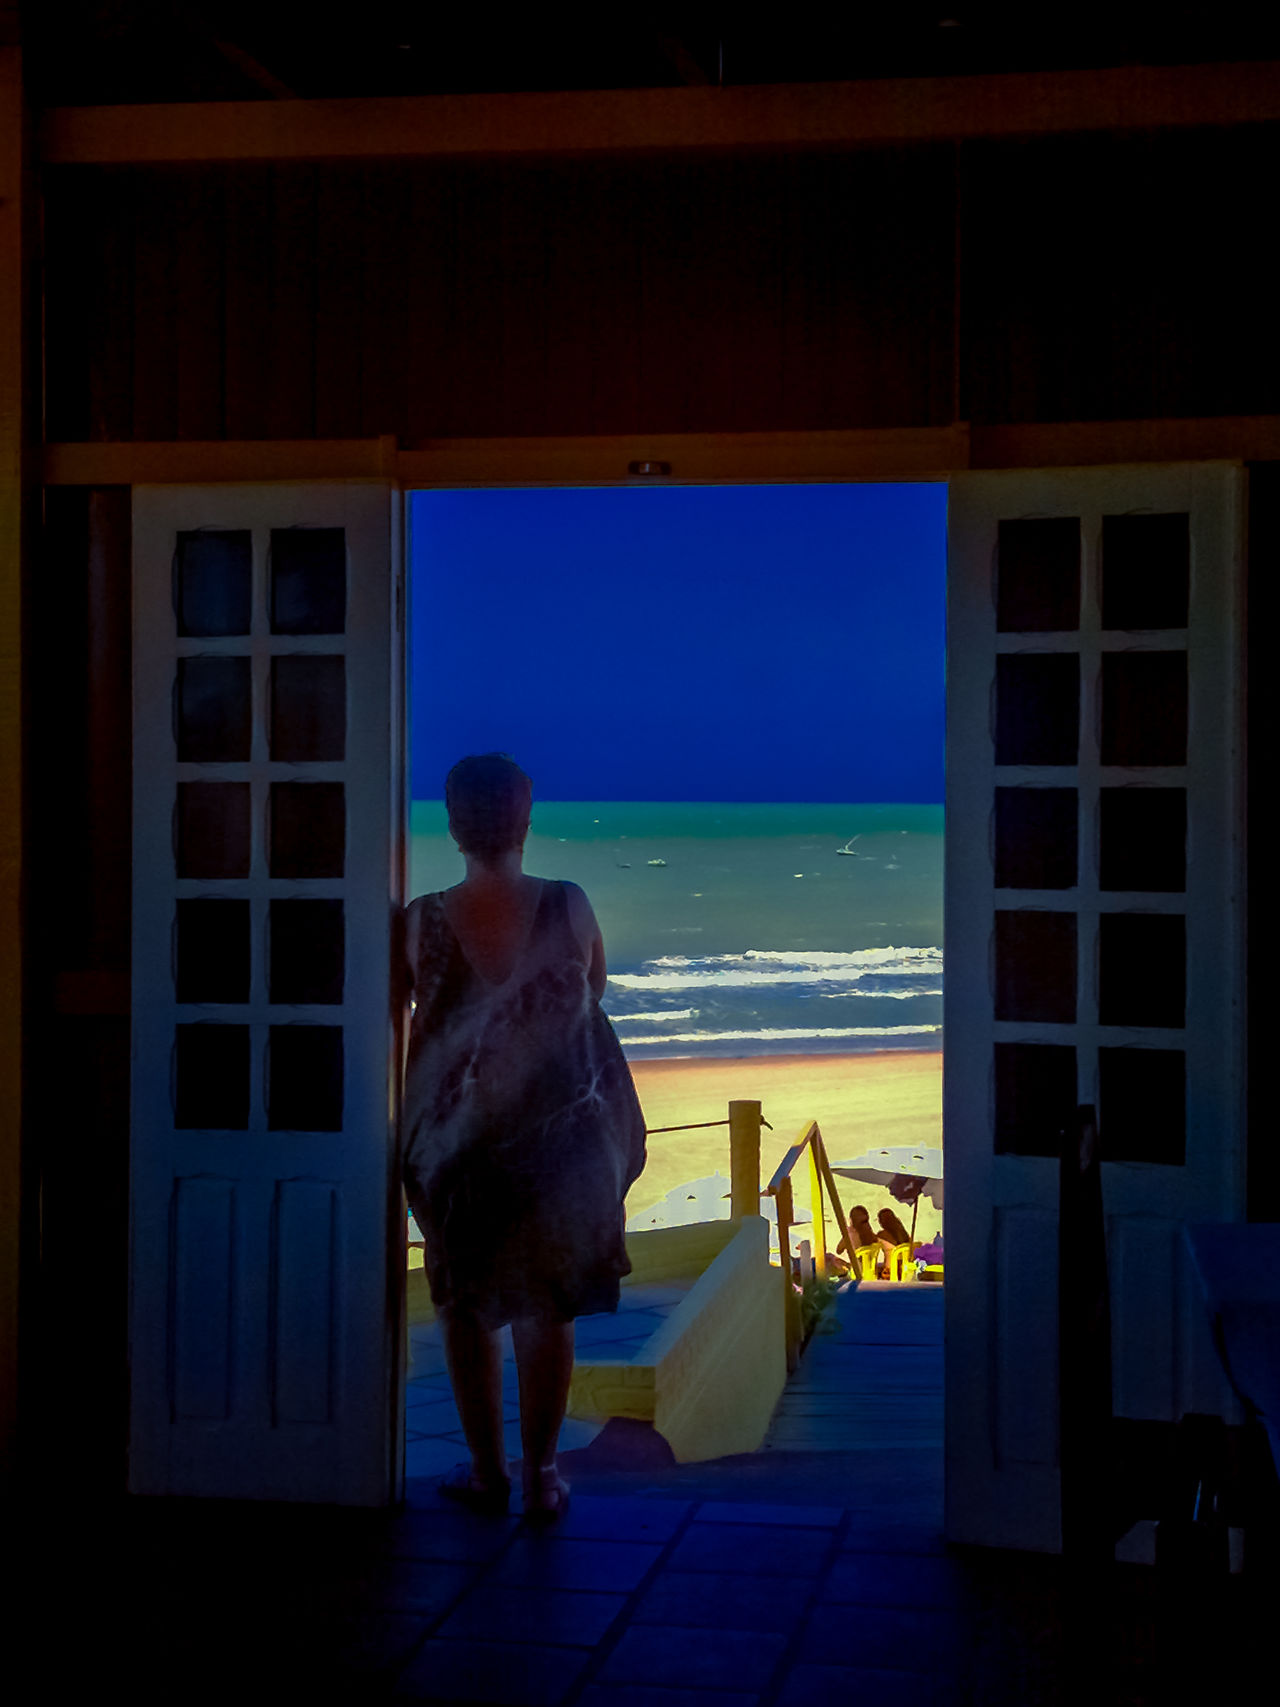 Gazing At The View Beauty In Nature Blue Sky Green Sea Nice Day Nice View One Person Rear View Sea Silhouette Standing Canoa Quebrada-CE